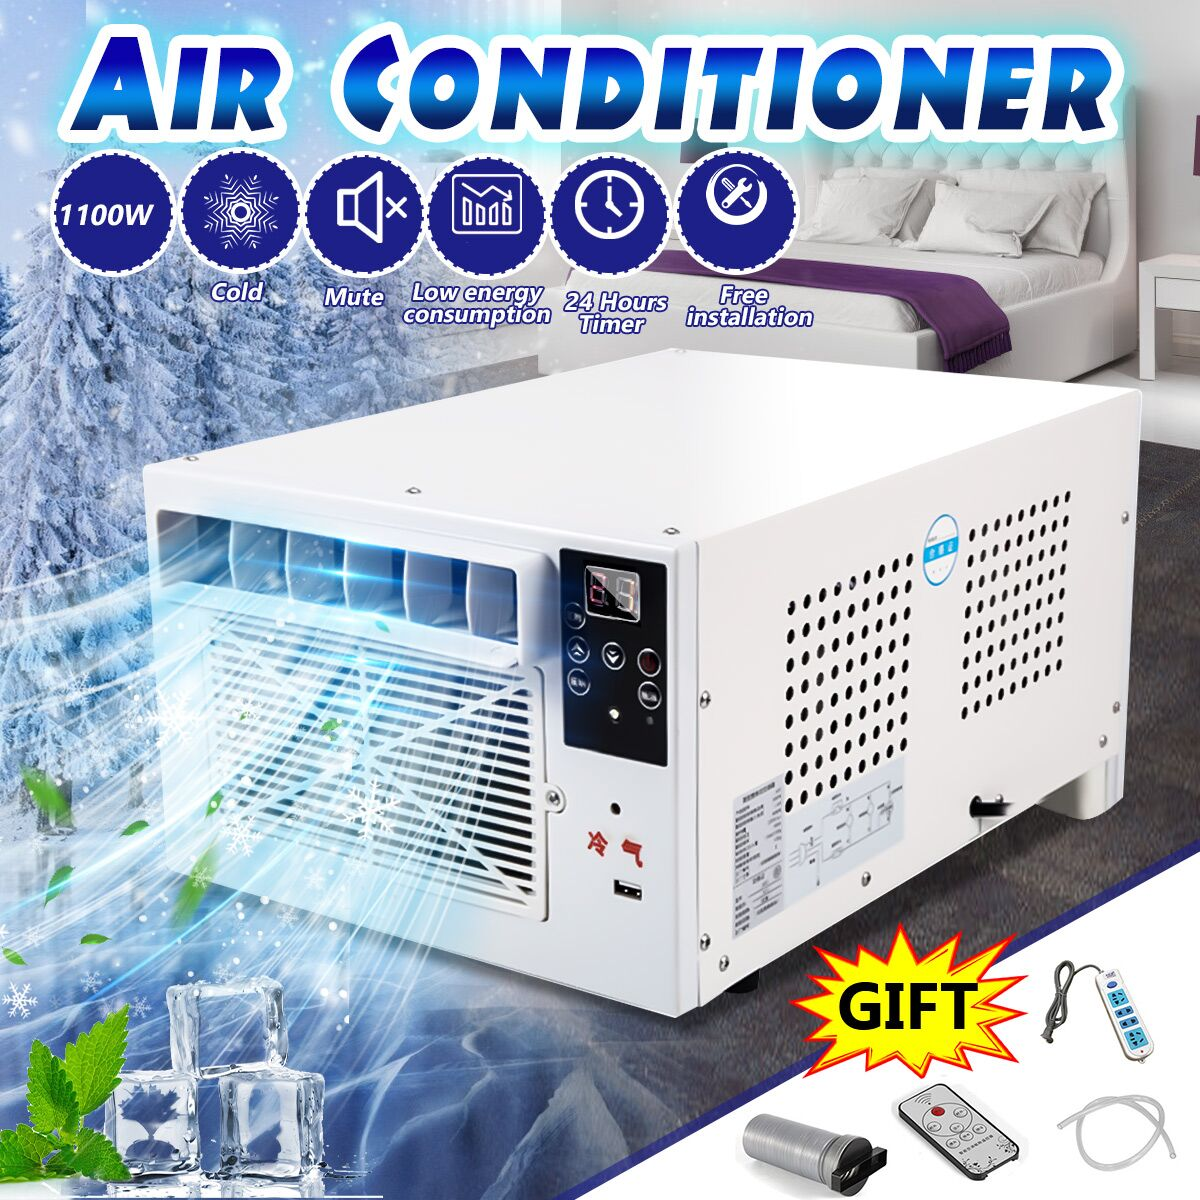 1100W Desktop Air Conditioner Cold/Heat Dual Use 220V/AC With Remote Control LED Display Panel Portable Air Cooling Heating Fan